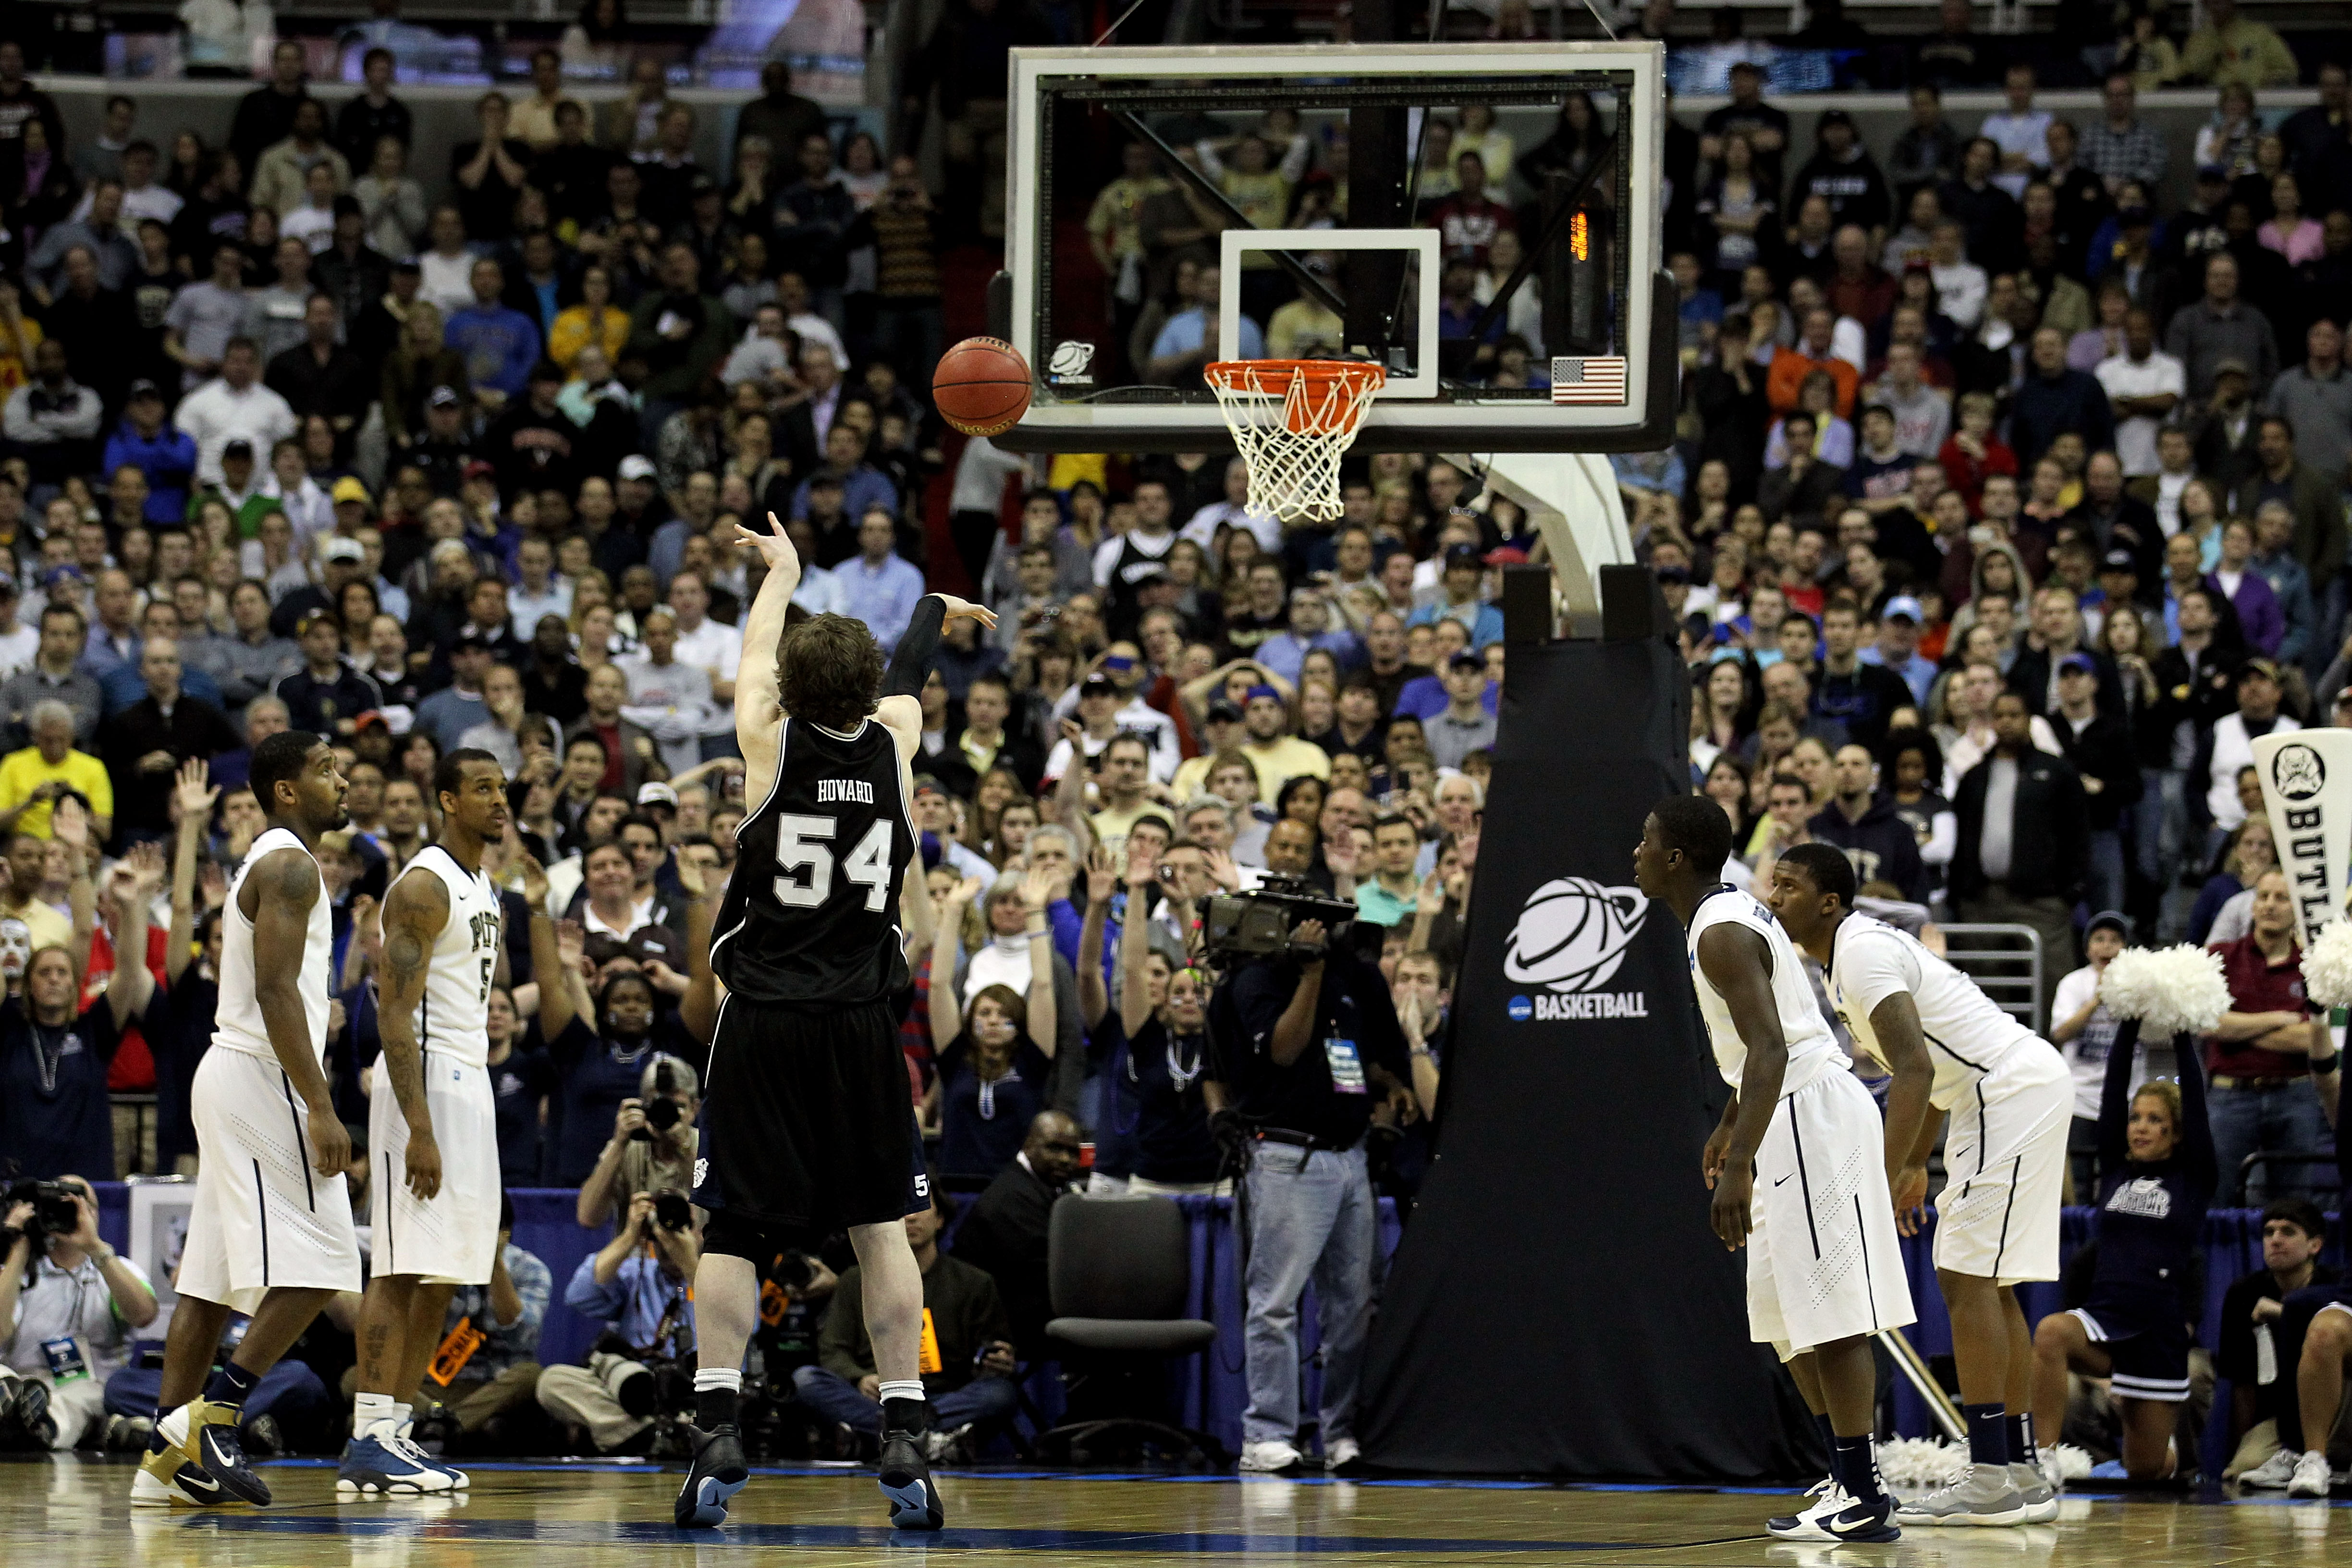 WASHINGTON - MARCH 19:  Matt Howard #54 of the Butler Bulldogs takes the final foul shot against the Pittsburgh Panthers during the third round of the 2011 NCAA men's basketball tournament at Verizon Center on March 19, 2011 in Washington, DC.  (Photo by